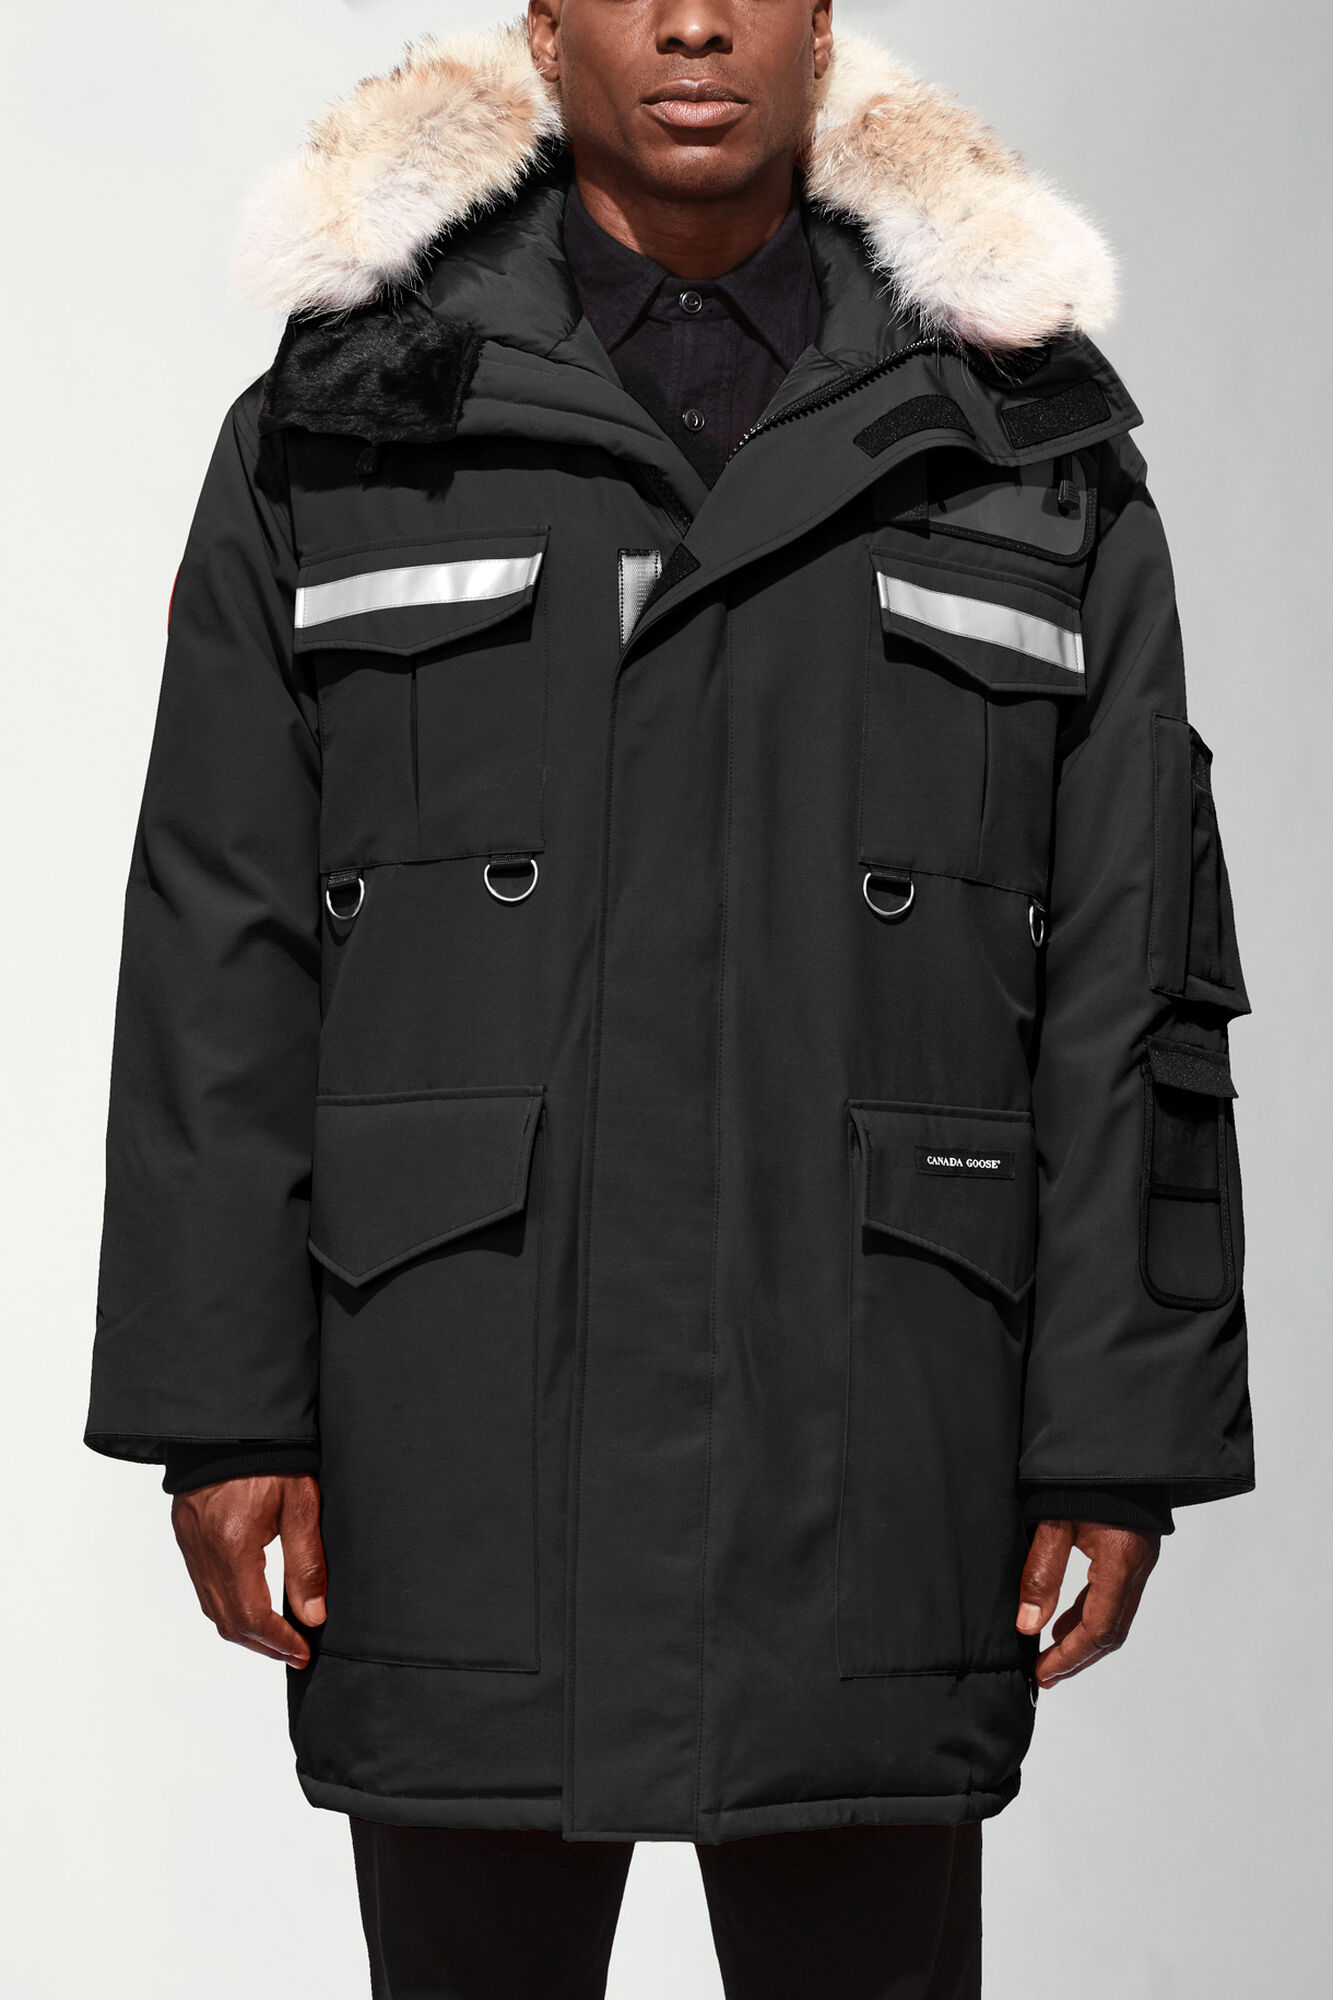 Canada Goose expedition parka sale shop - Men's Arctic Program Snow Mantra Parka | Canada Goose?